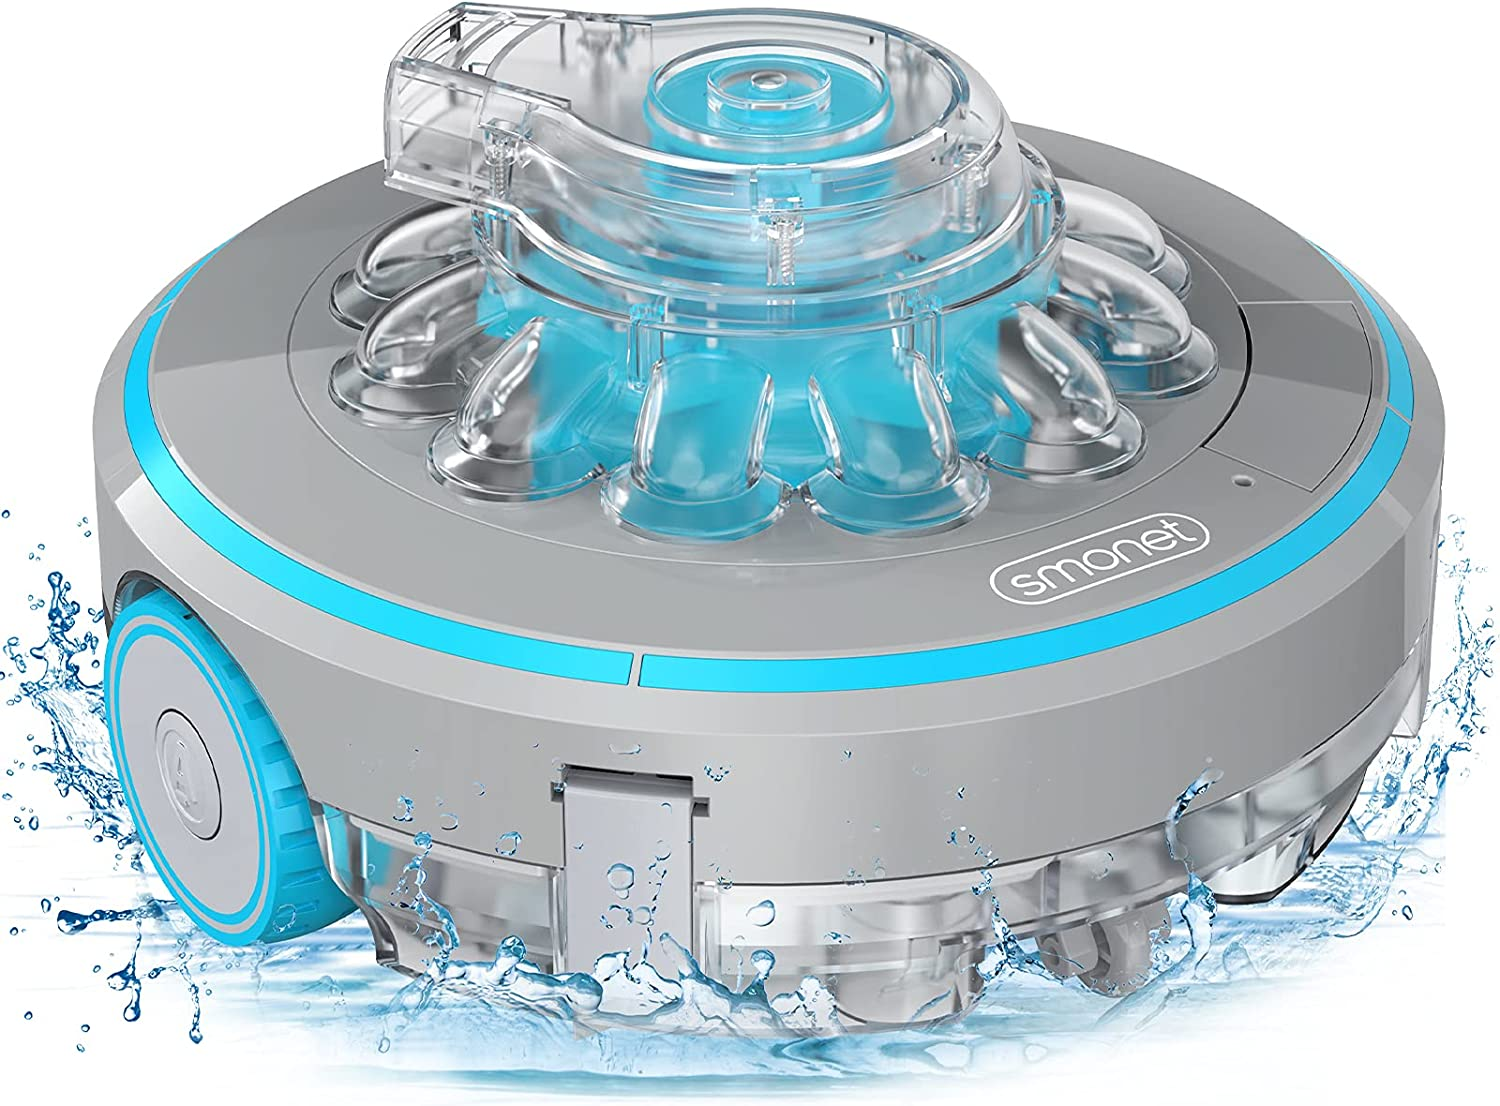 SMONET Cordless Robotic Luxury Pool Automatic Suction Super intense SALE Powerful Cleaner